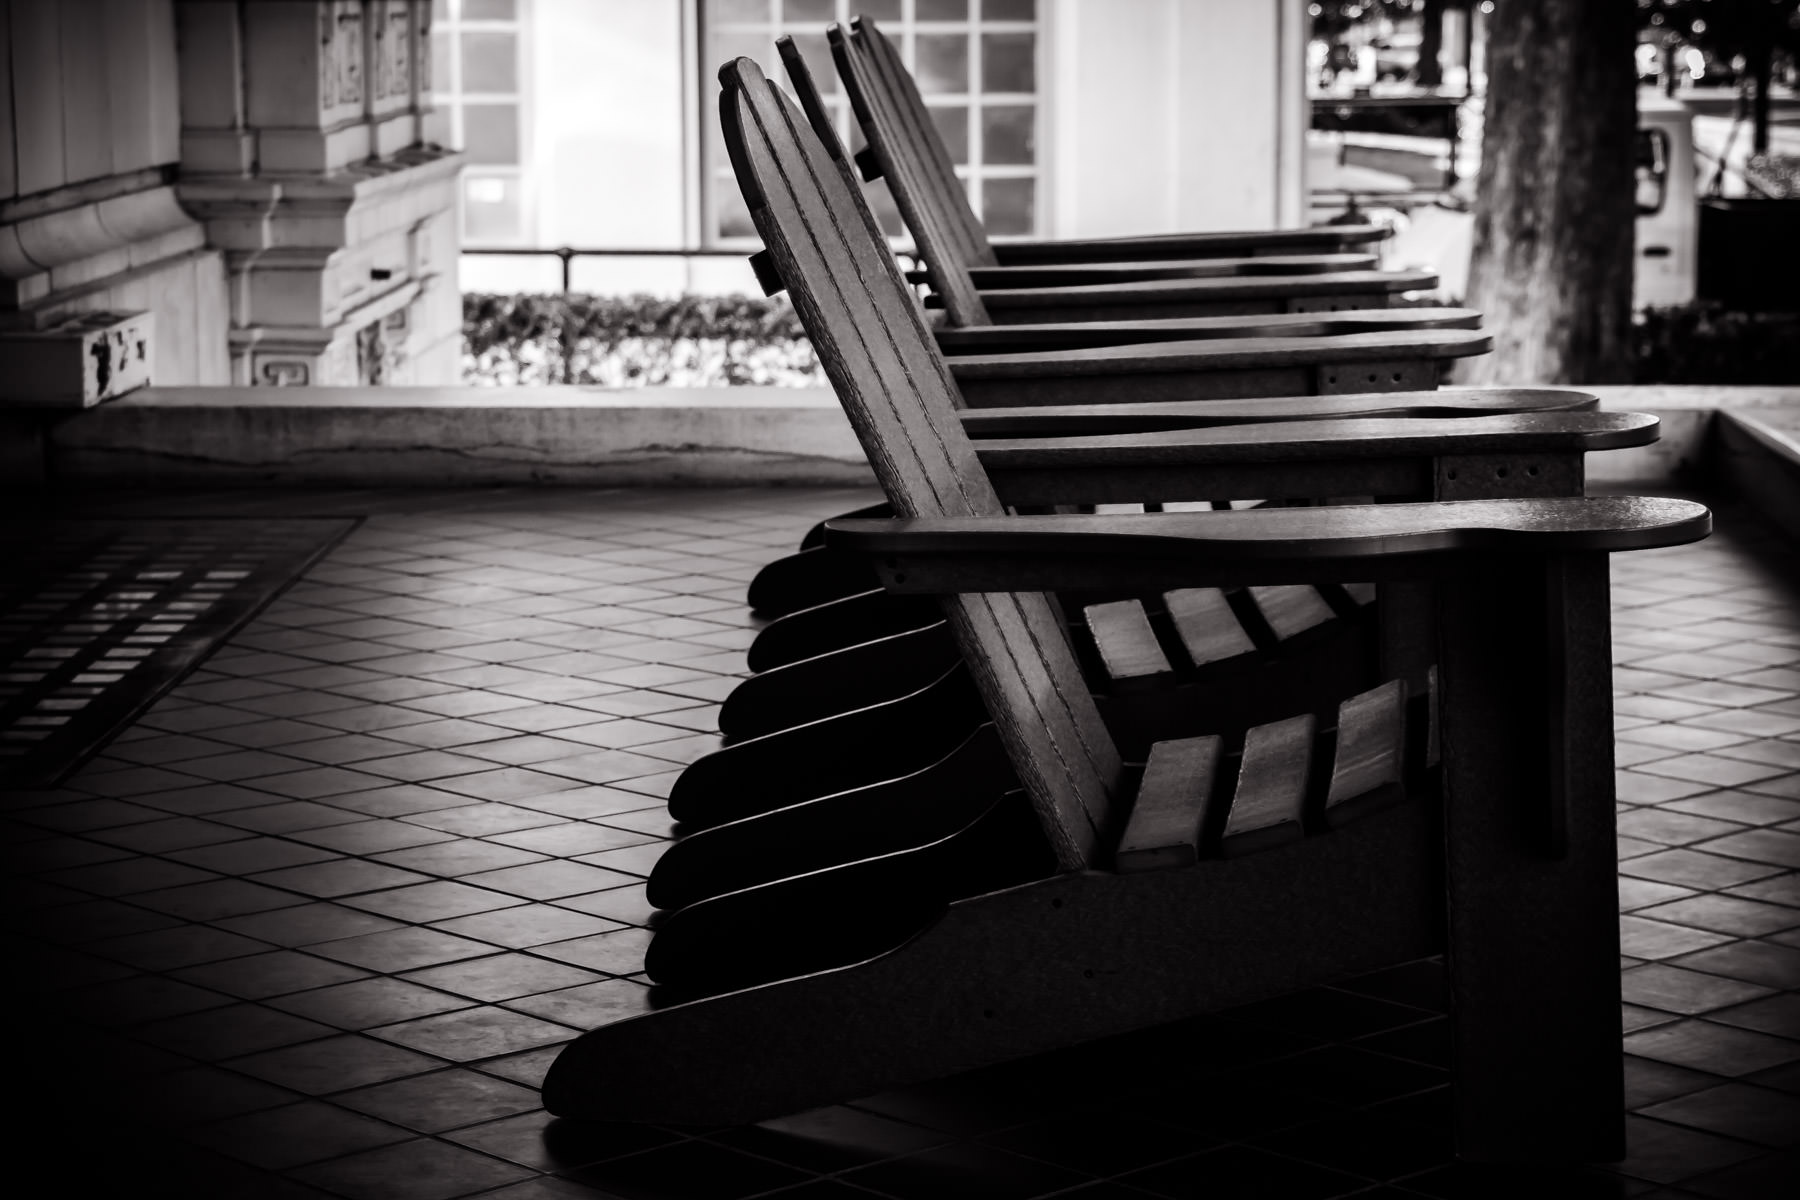 Adirondack chairs on the front steps of the Fordyce Bath House, Hot Springs, Arkansas.